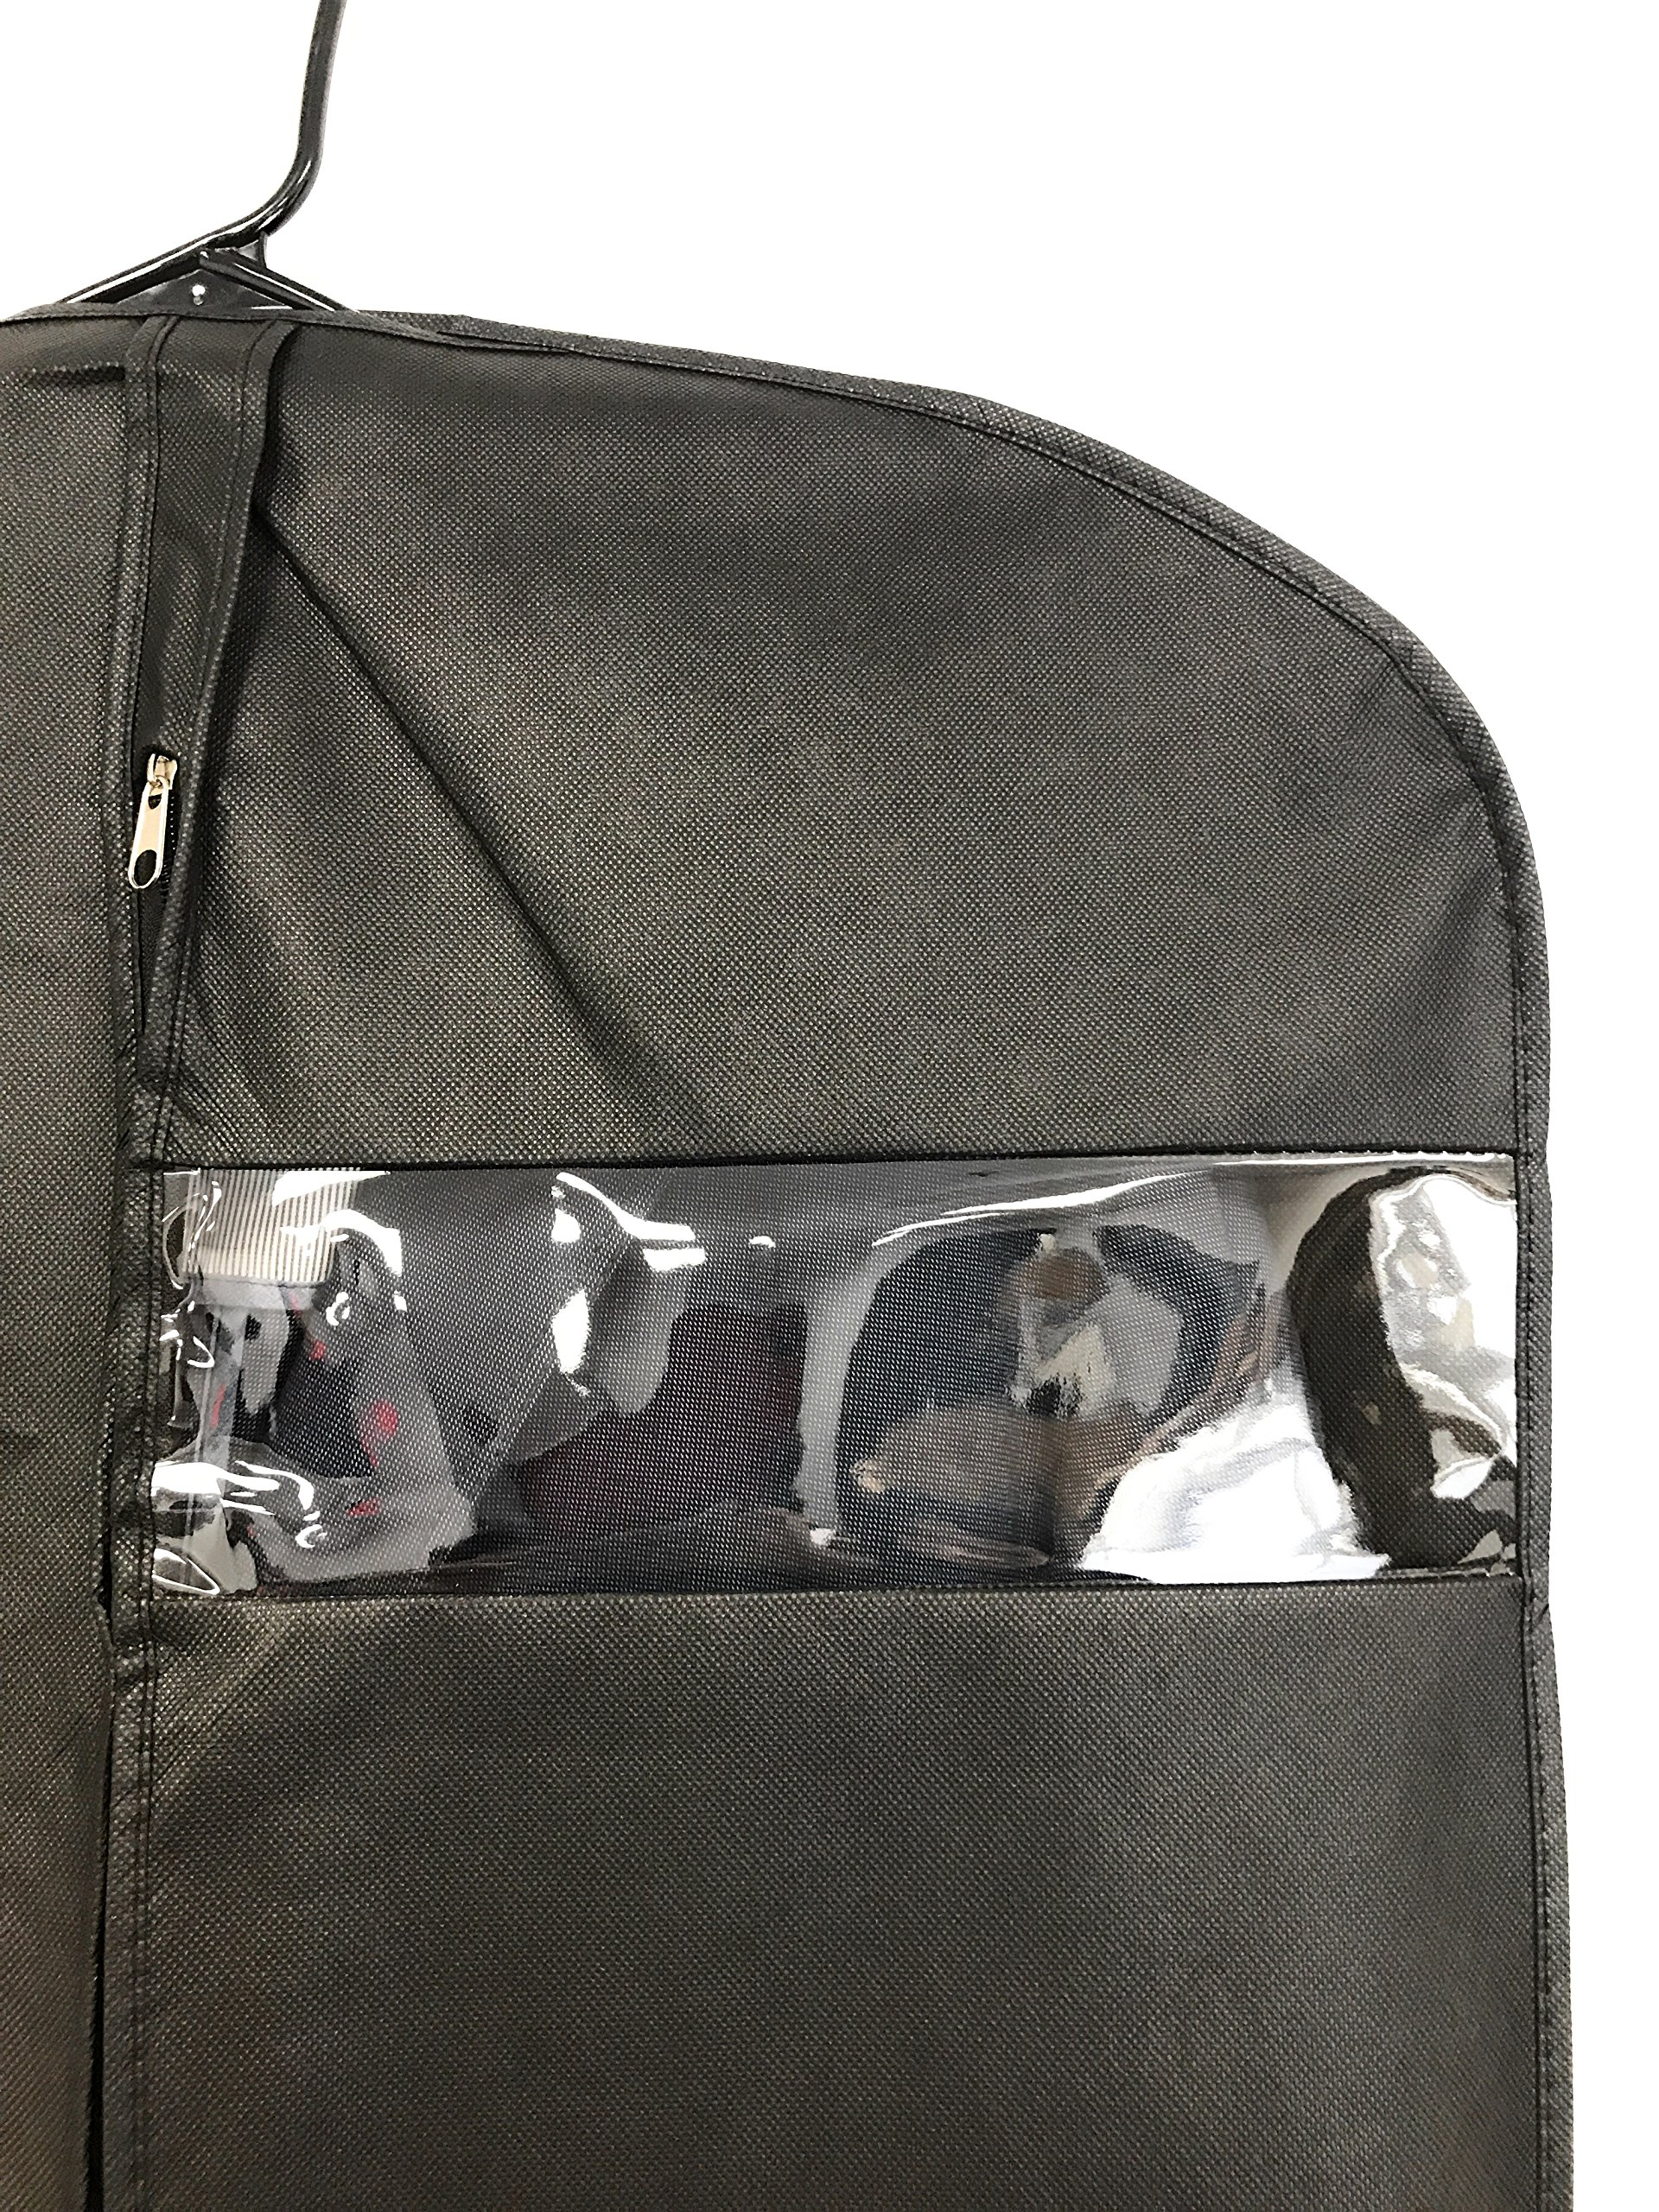 Garment Bag Covers By MYTH21 for Luggage, Dresses, Linens, Storage or Travel Suit Bags with Clear Window Pack of 5 (Black, 54) by MYTH21 (Image #2)